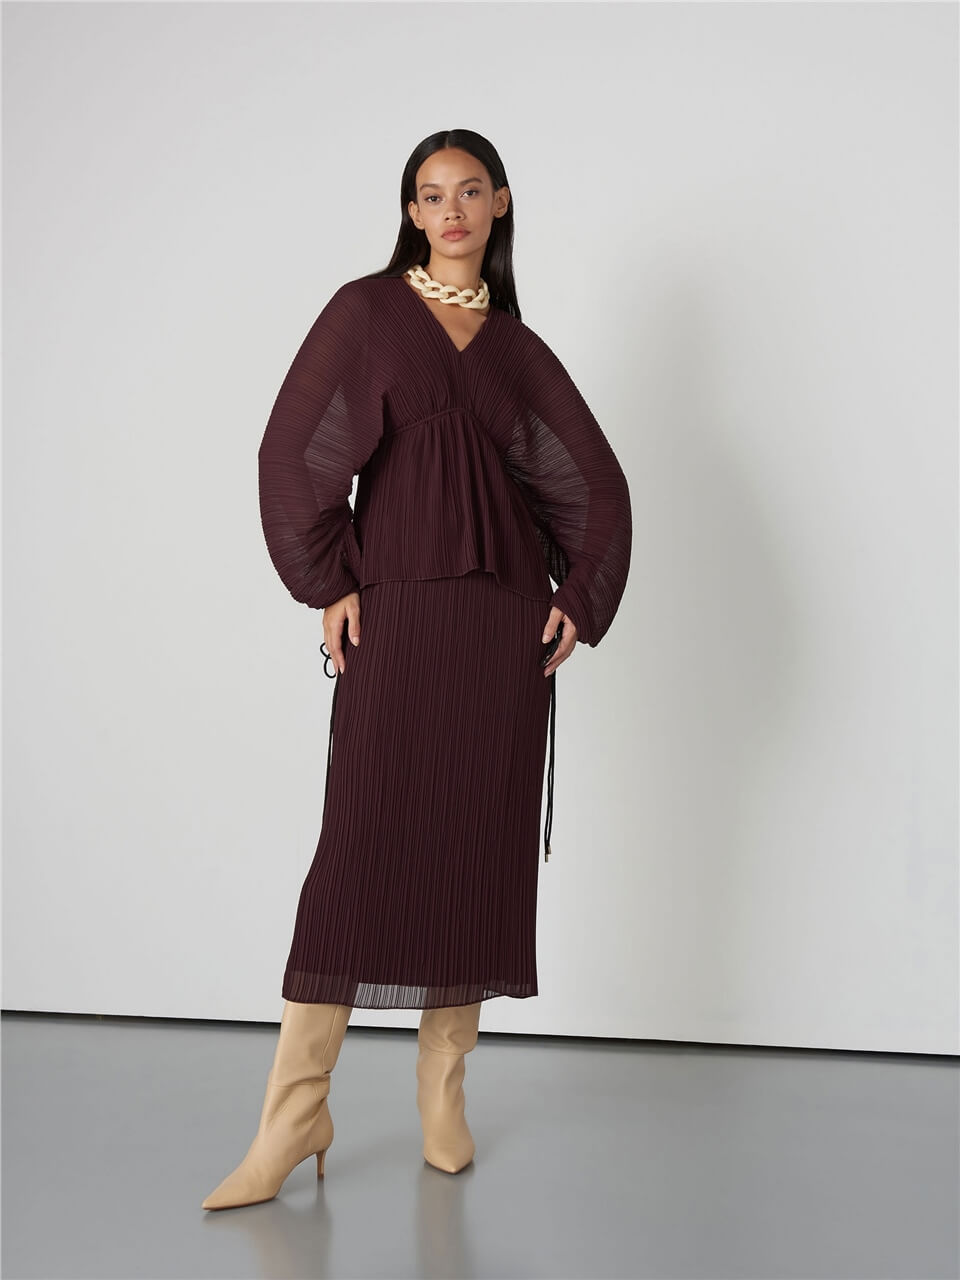 Pleated Damson Color Dress